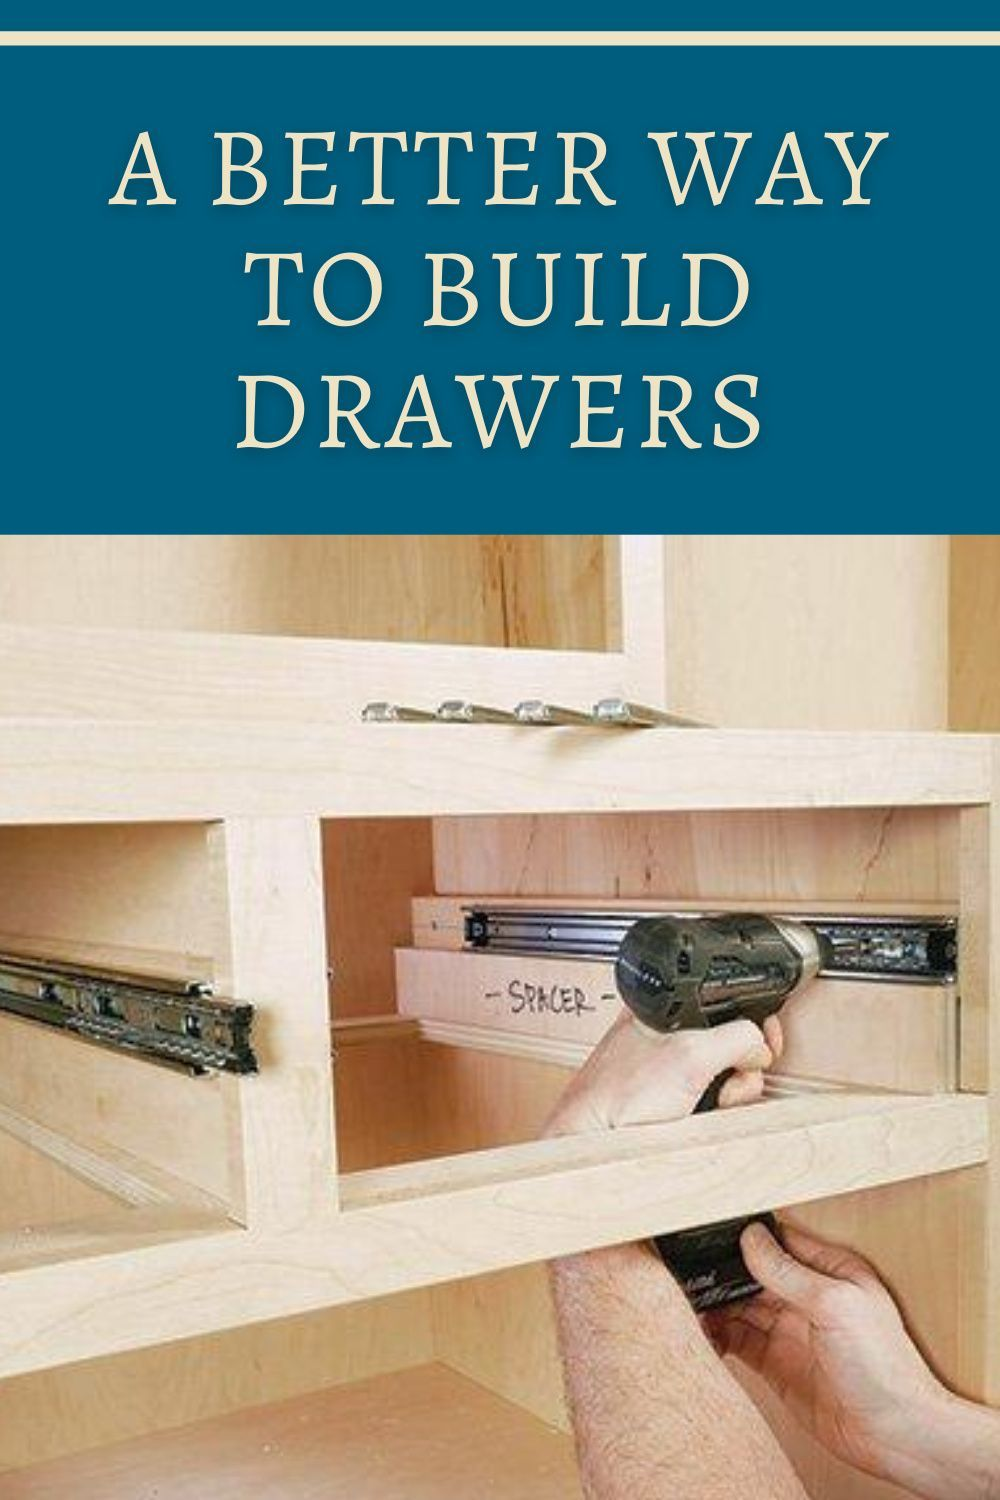 Building Drawers by Installing and Measuring the Drawer